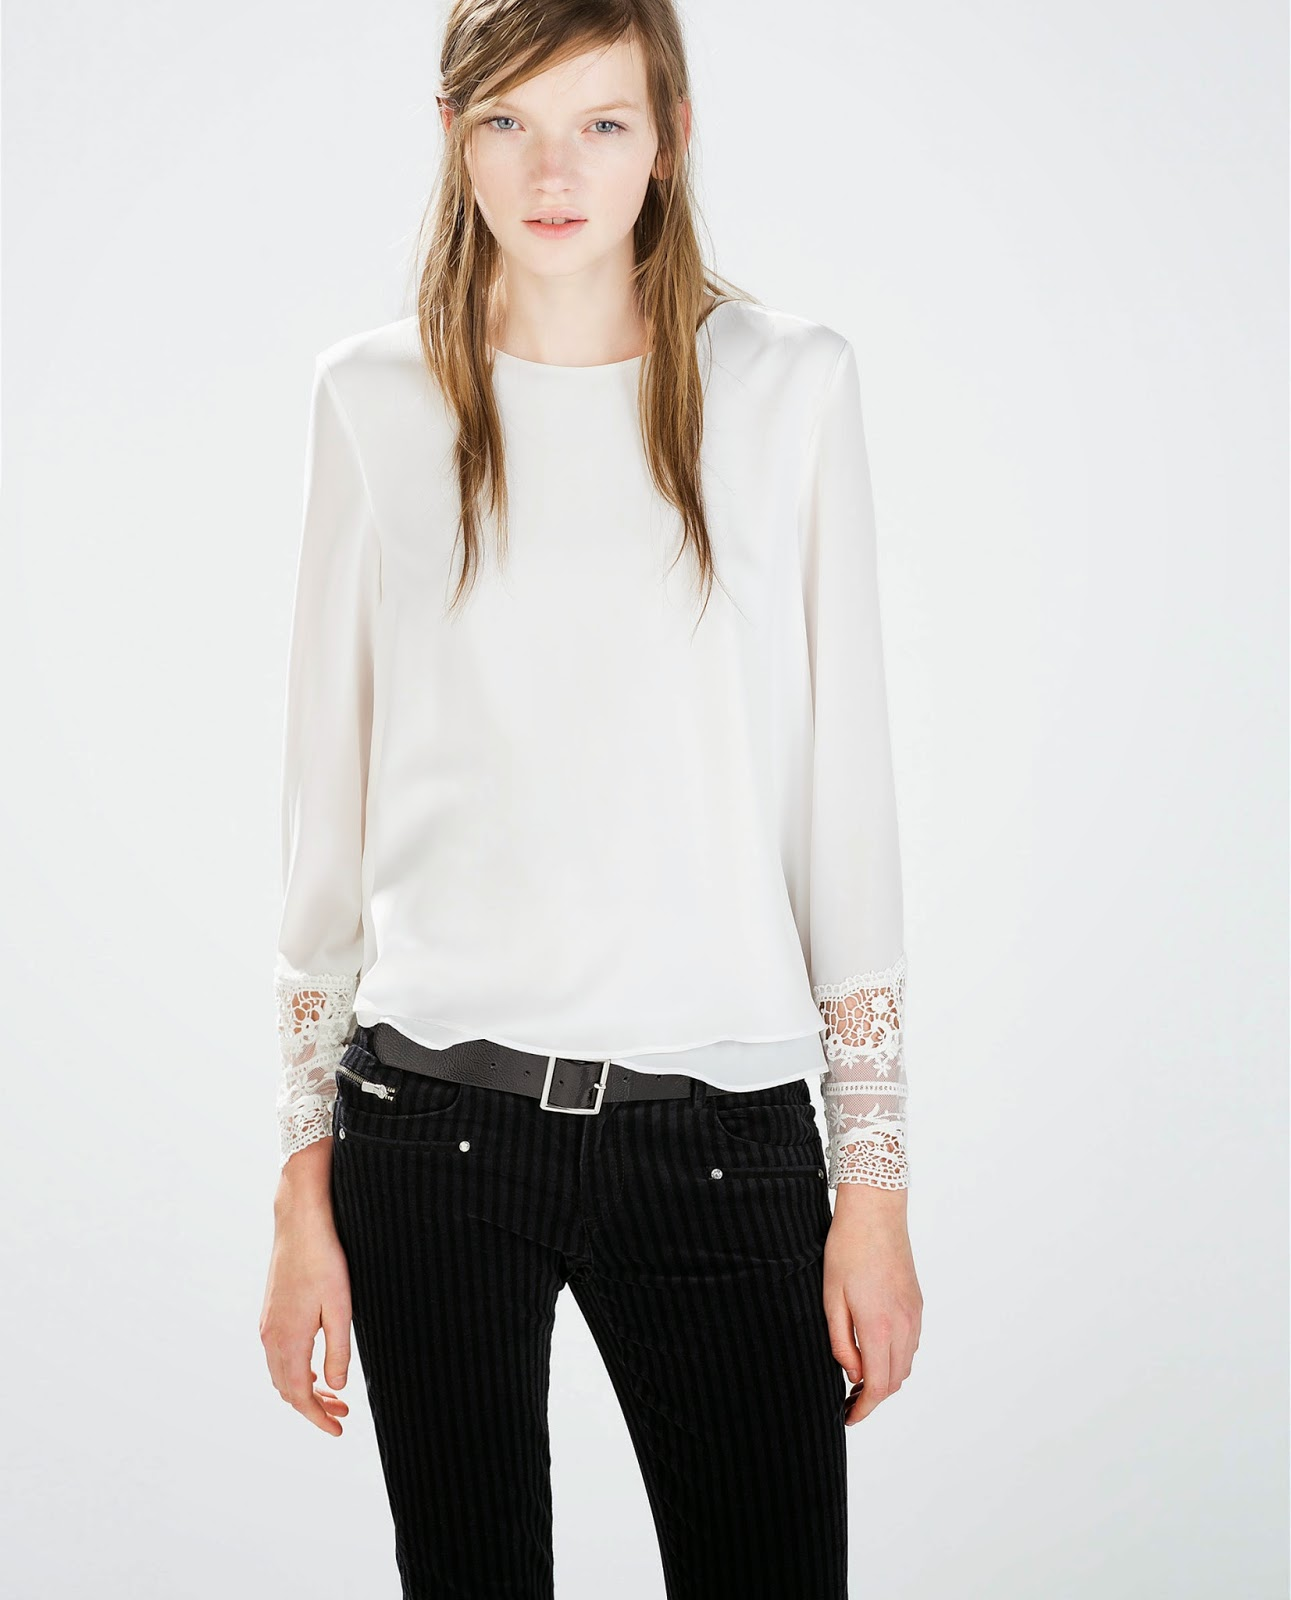 zara white lace blouse,